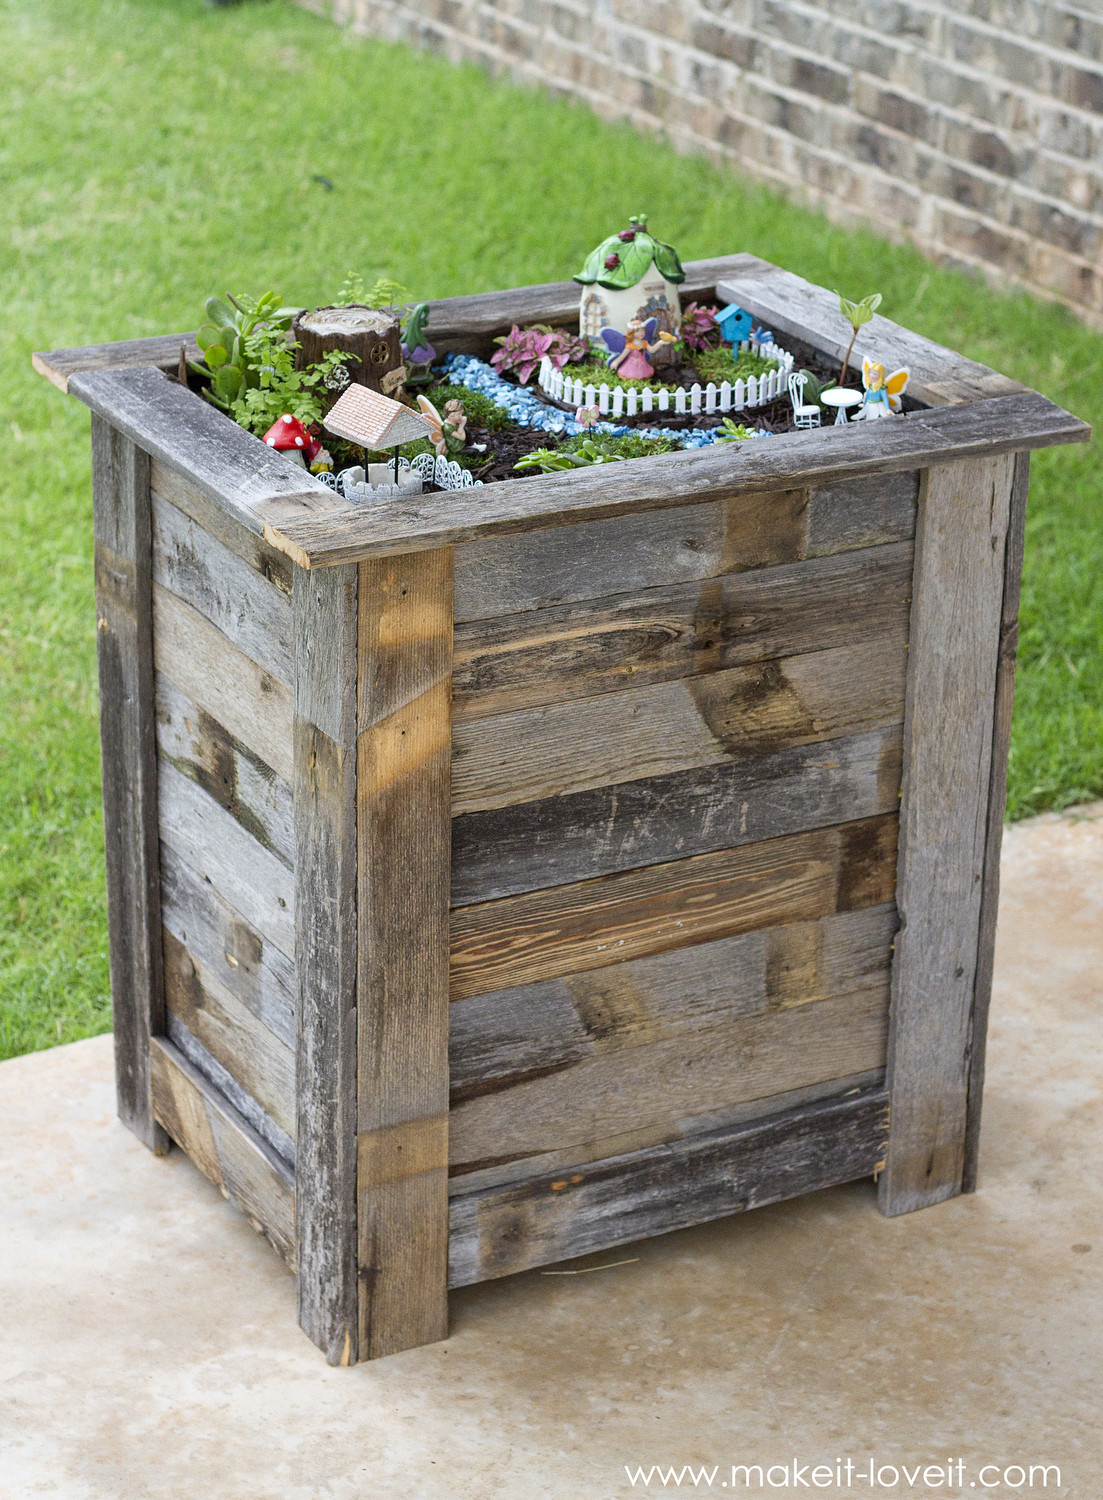 Best ideas about DIY Wood Planter . Save or Pin DIY Reclaimed Wood Planter Box r an upright Fairy Now.